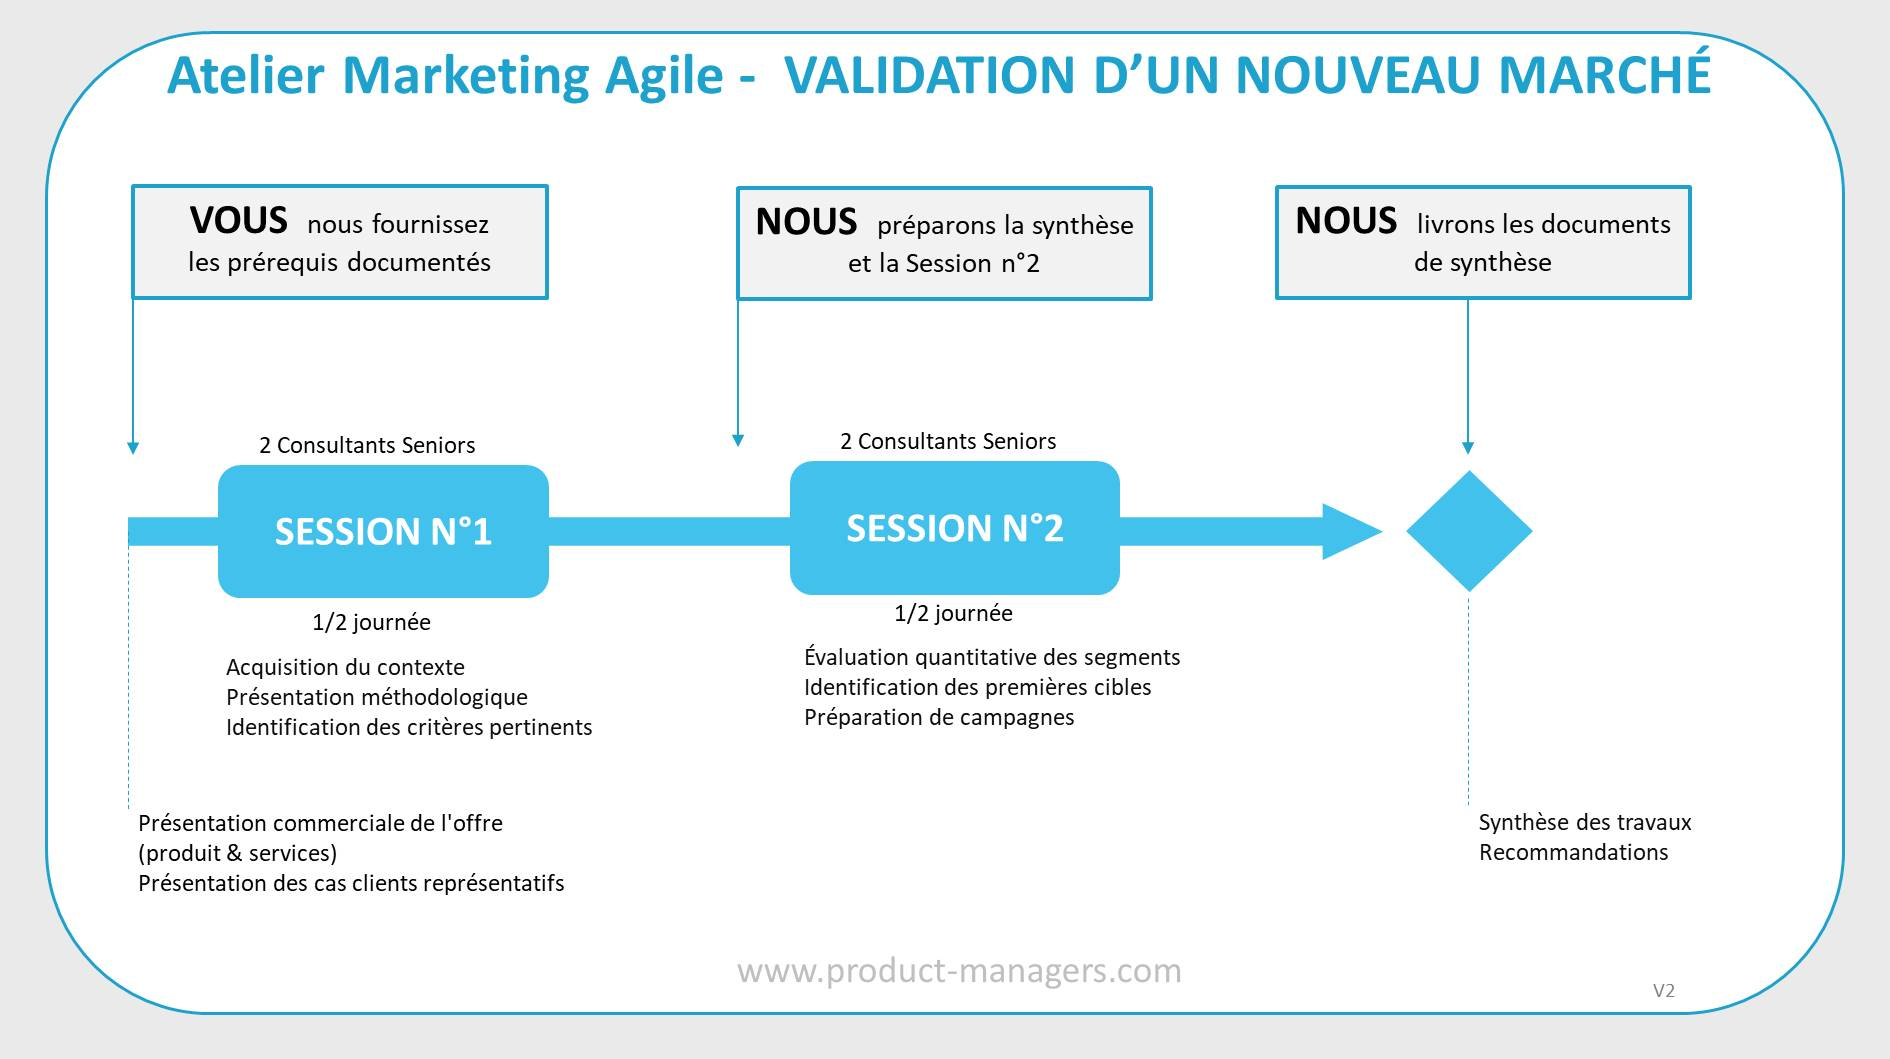 atelier-marketing-agile-validation-nouveau-marche-v2